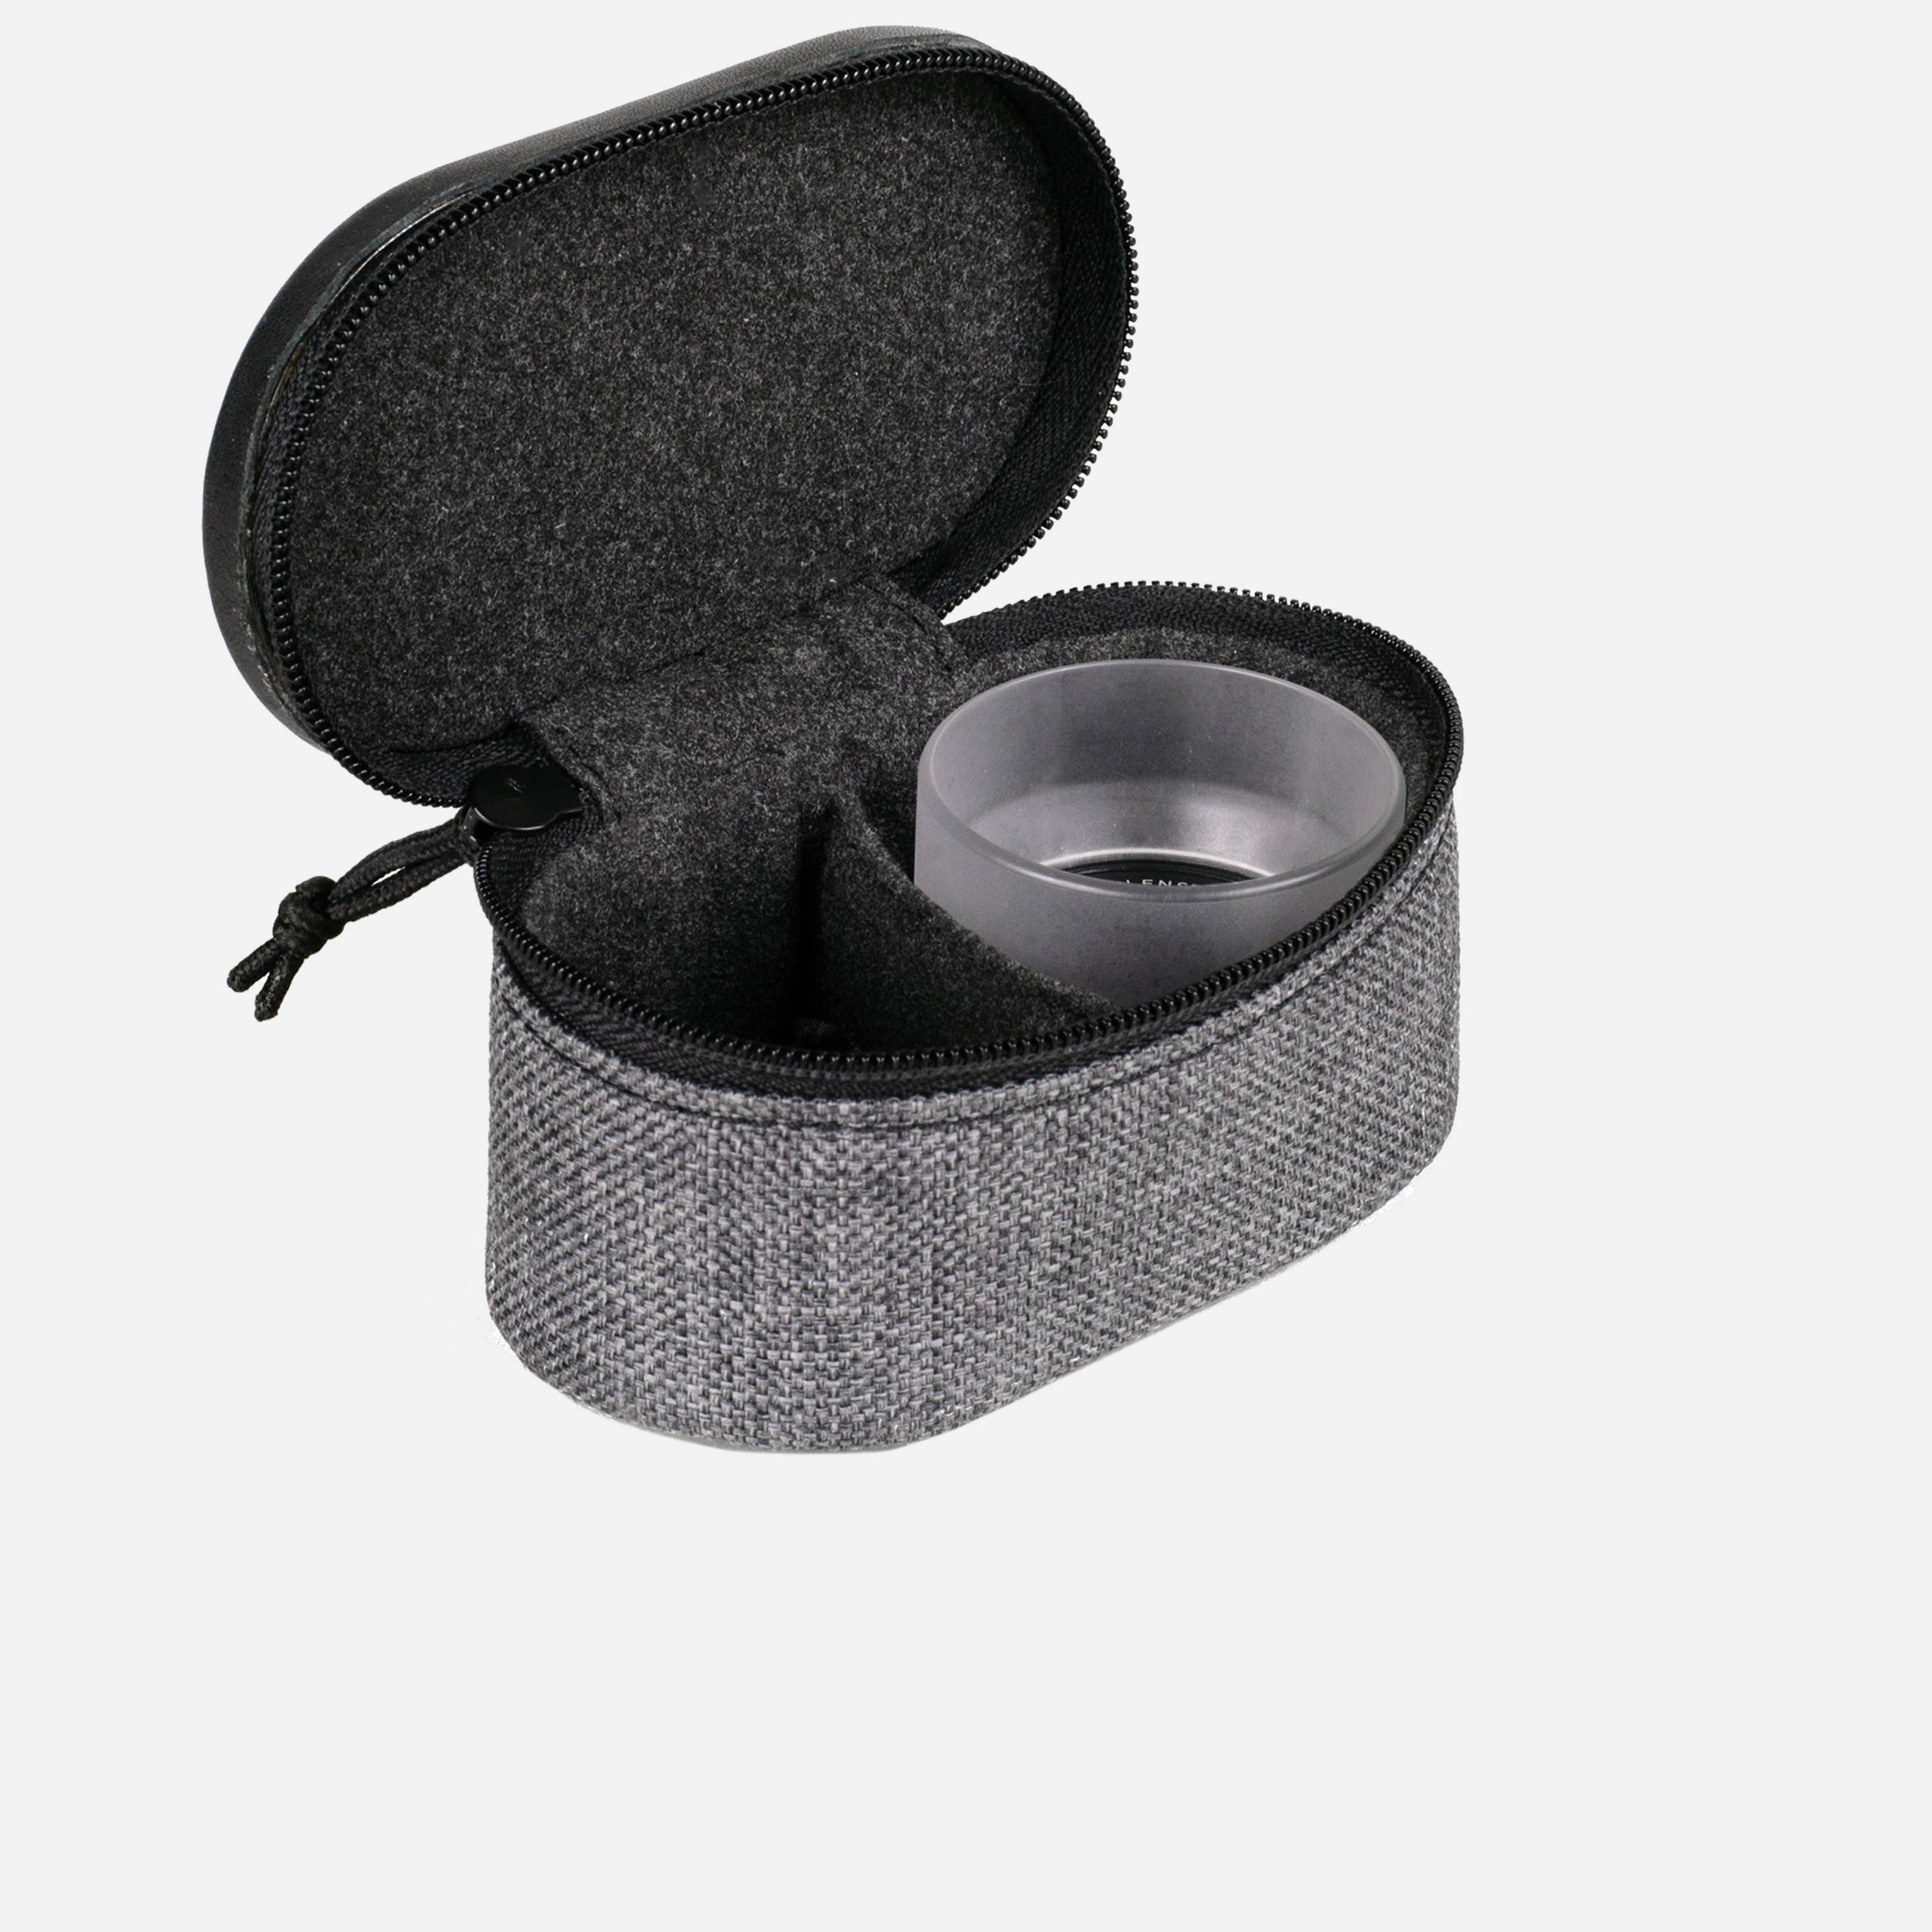 Moment Lens Pouch Open with Lens Two